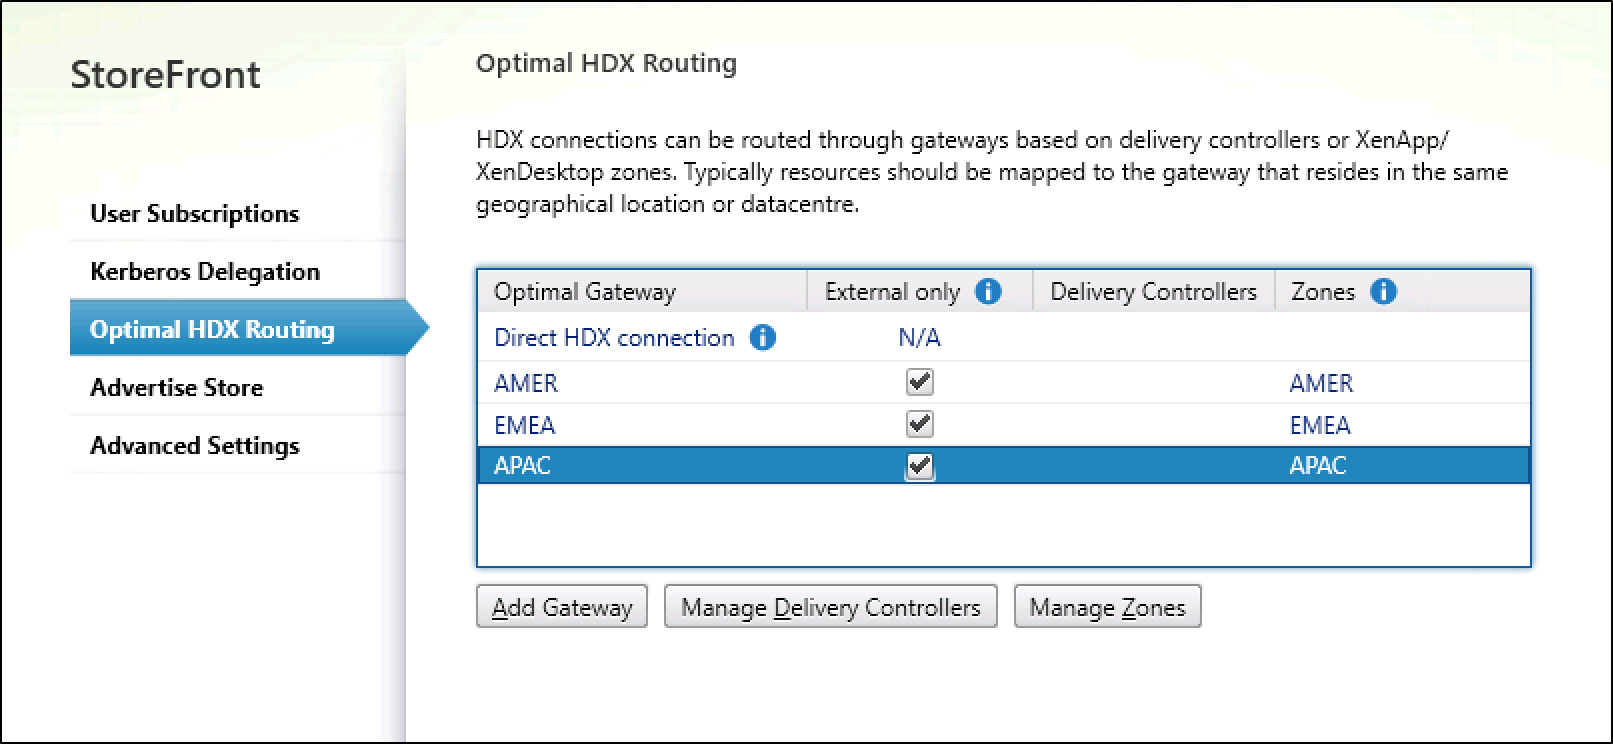 Optimal HDX Routing